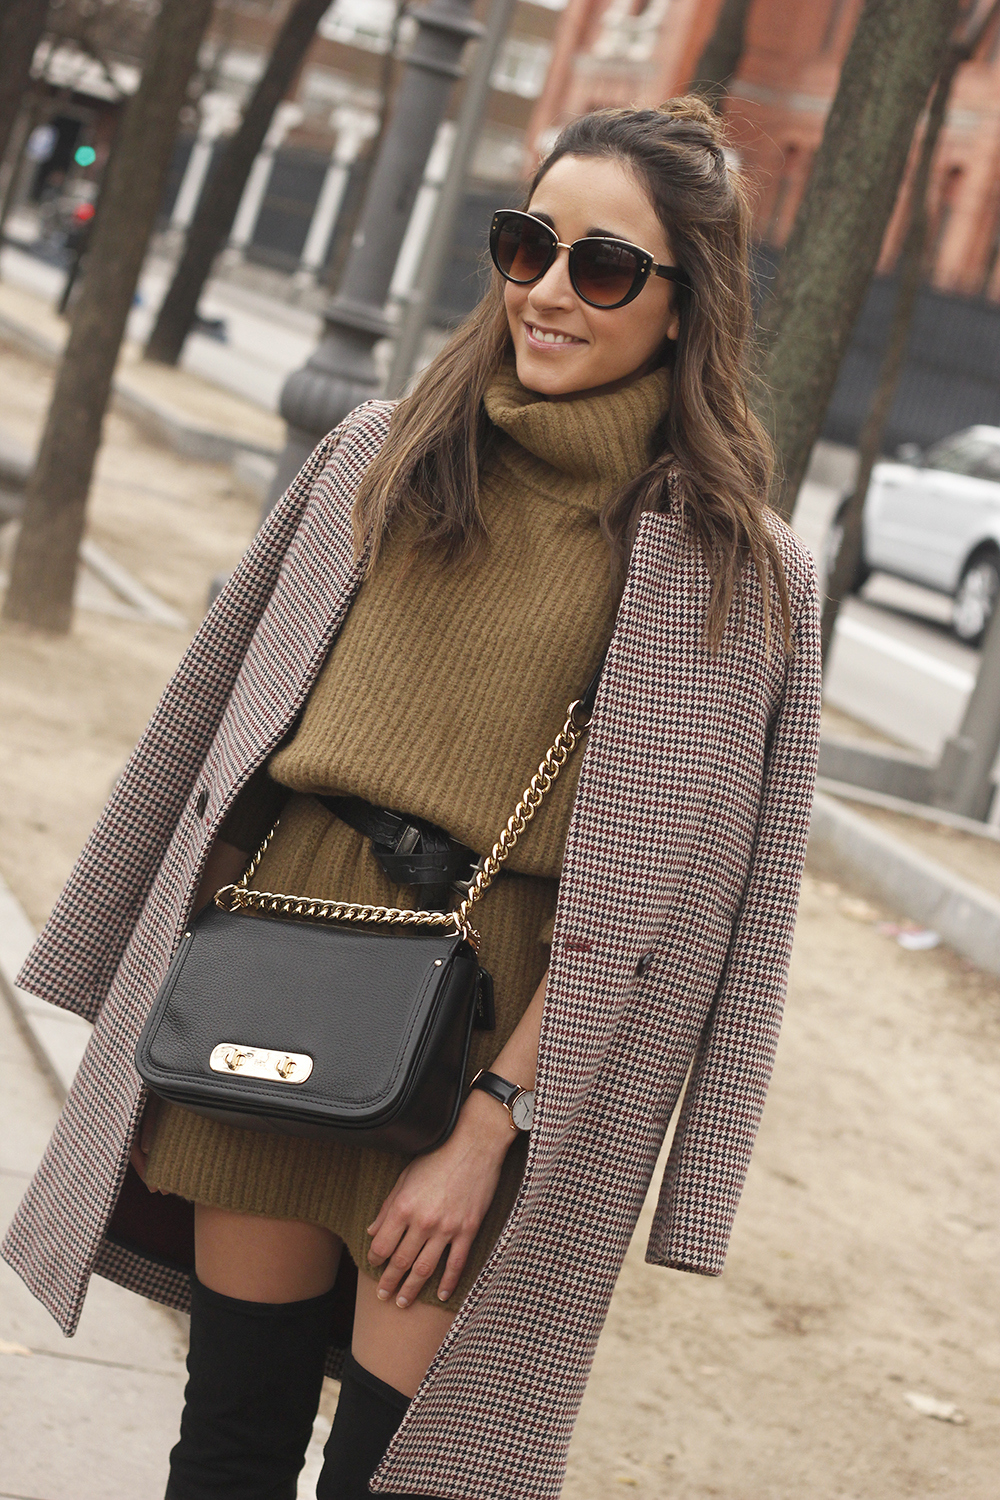 Turtleneck Dress over the knee boots coat sunnies coach bag style fashion outfit14